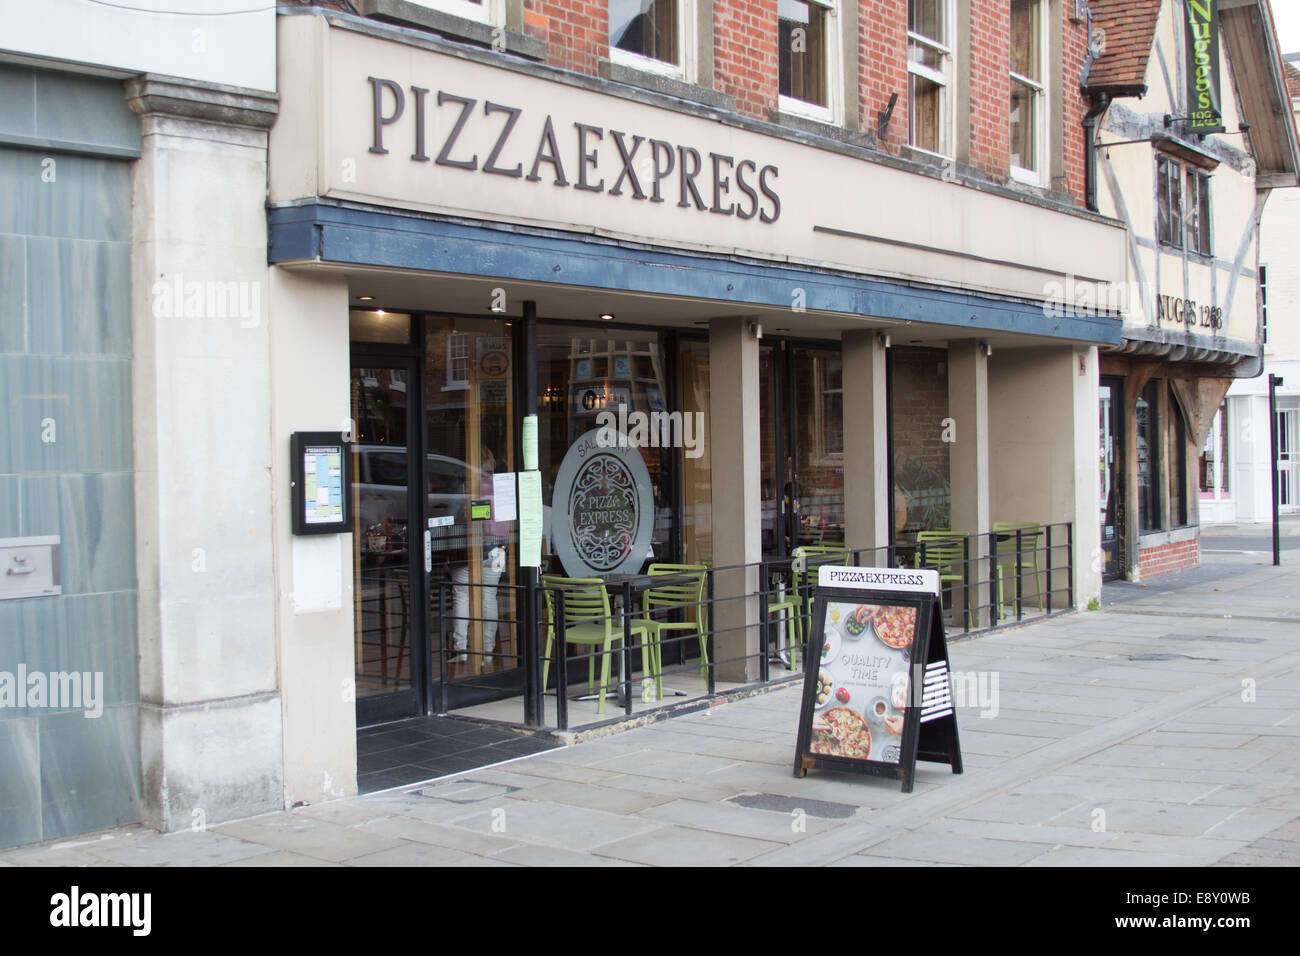 Pizza Express Salisbury Wiltshire Stock Photo 74352135 Alamy